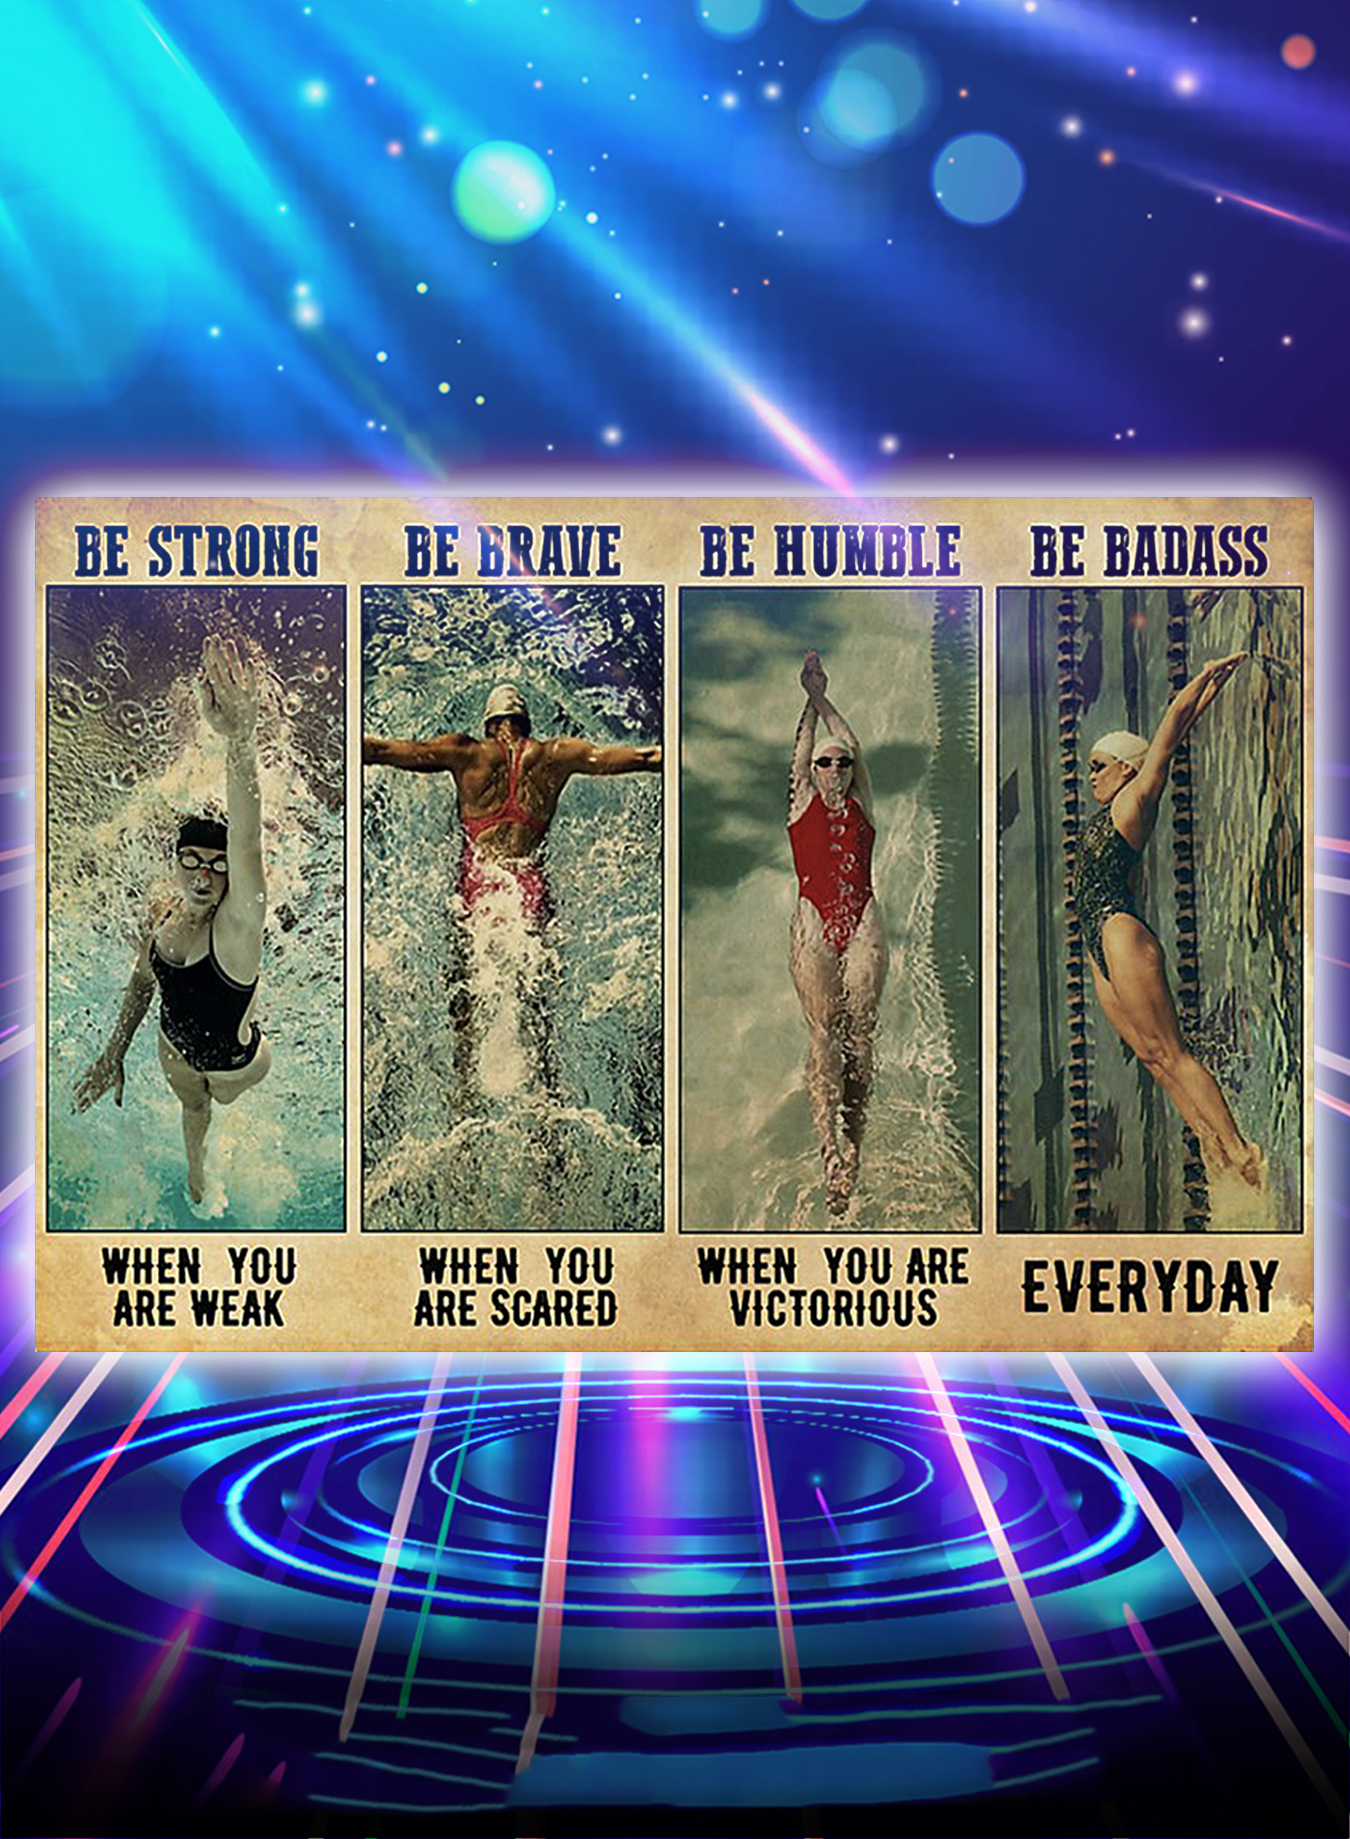 Swimming be strong be brave be humble be badass poster - A2